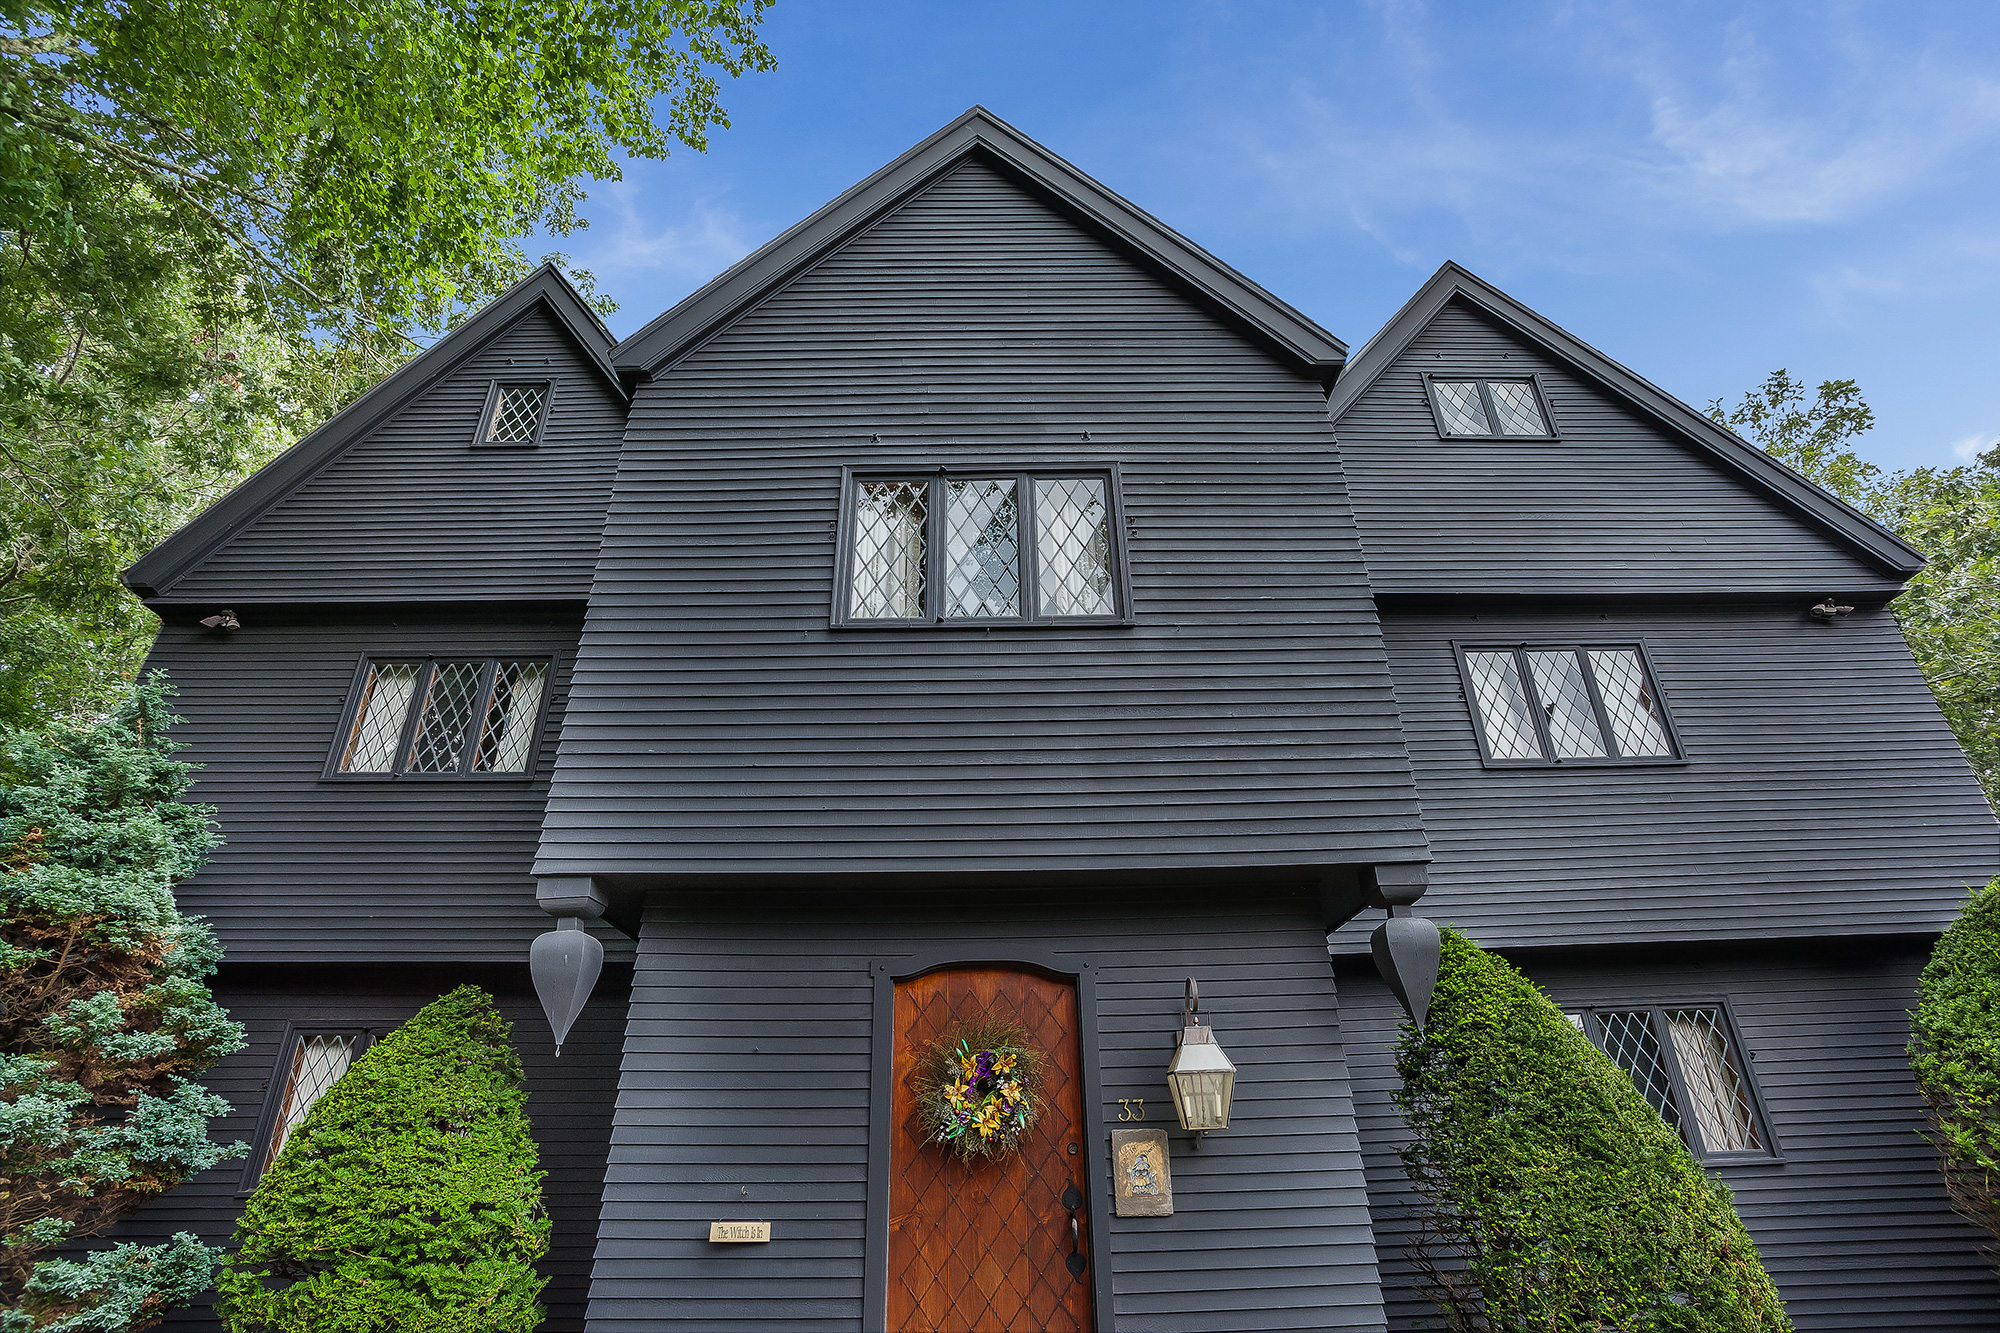 salem-witch-house-lookalike-sandwich-massachusetts